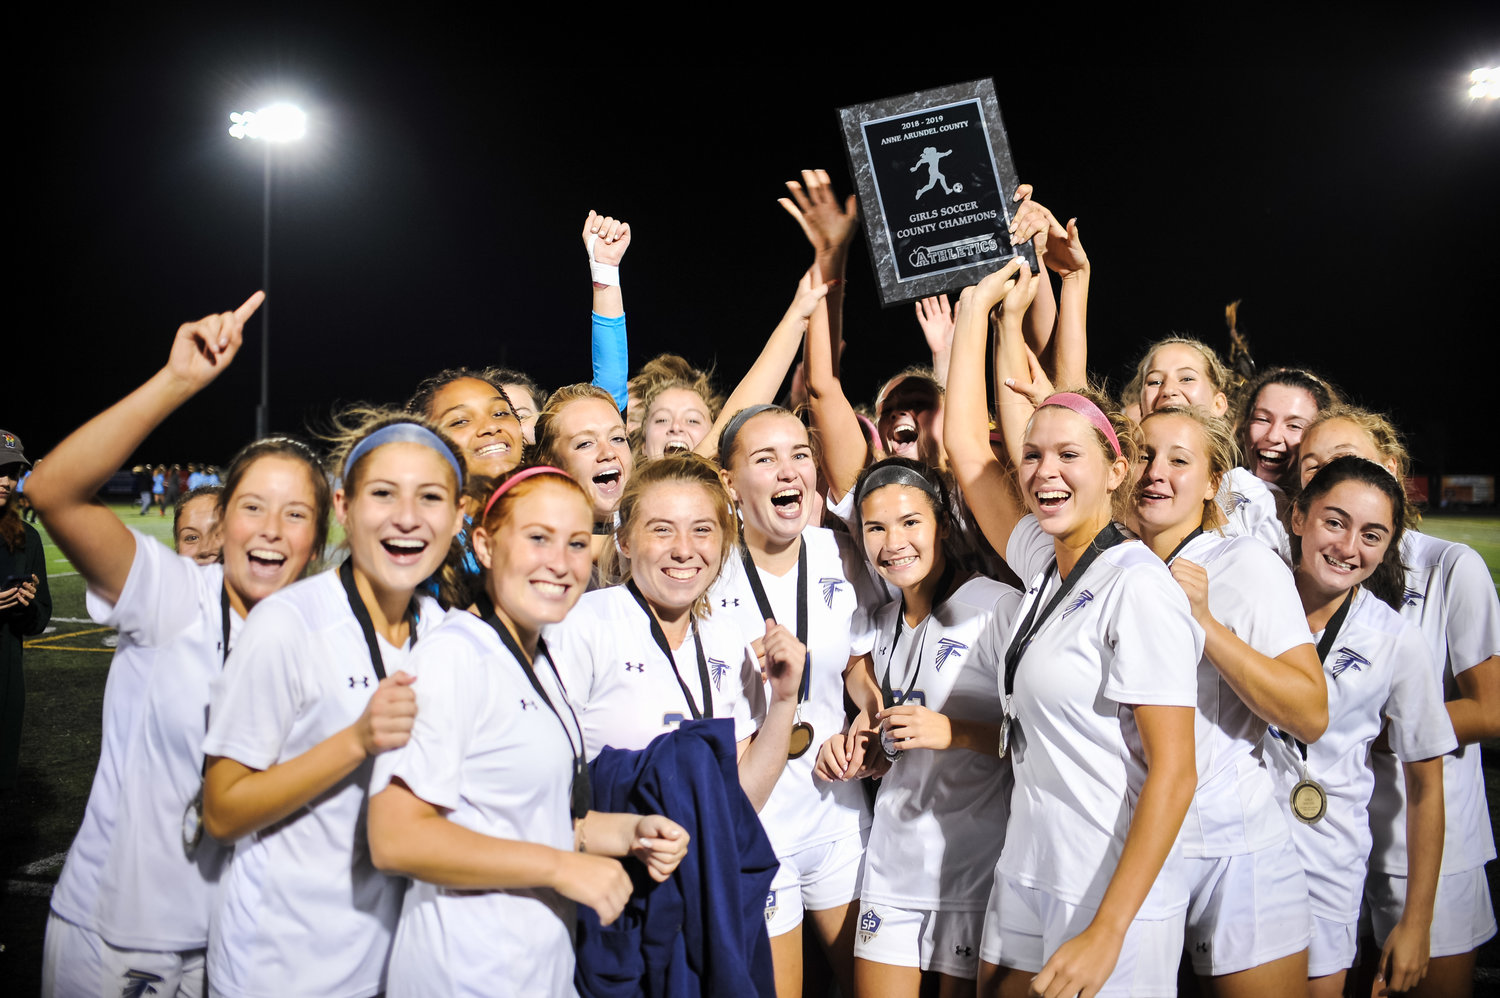 The Falcons (14-1) blanked South River for their 13th shutout of the season and won the county championship over South River on penalties, 0-0 (4-3).